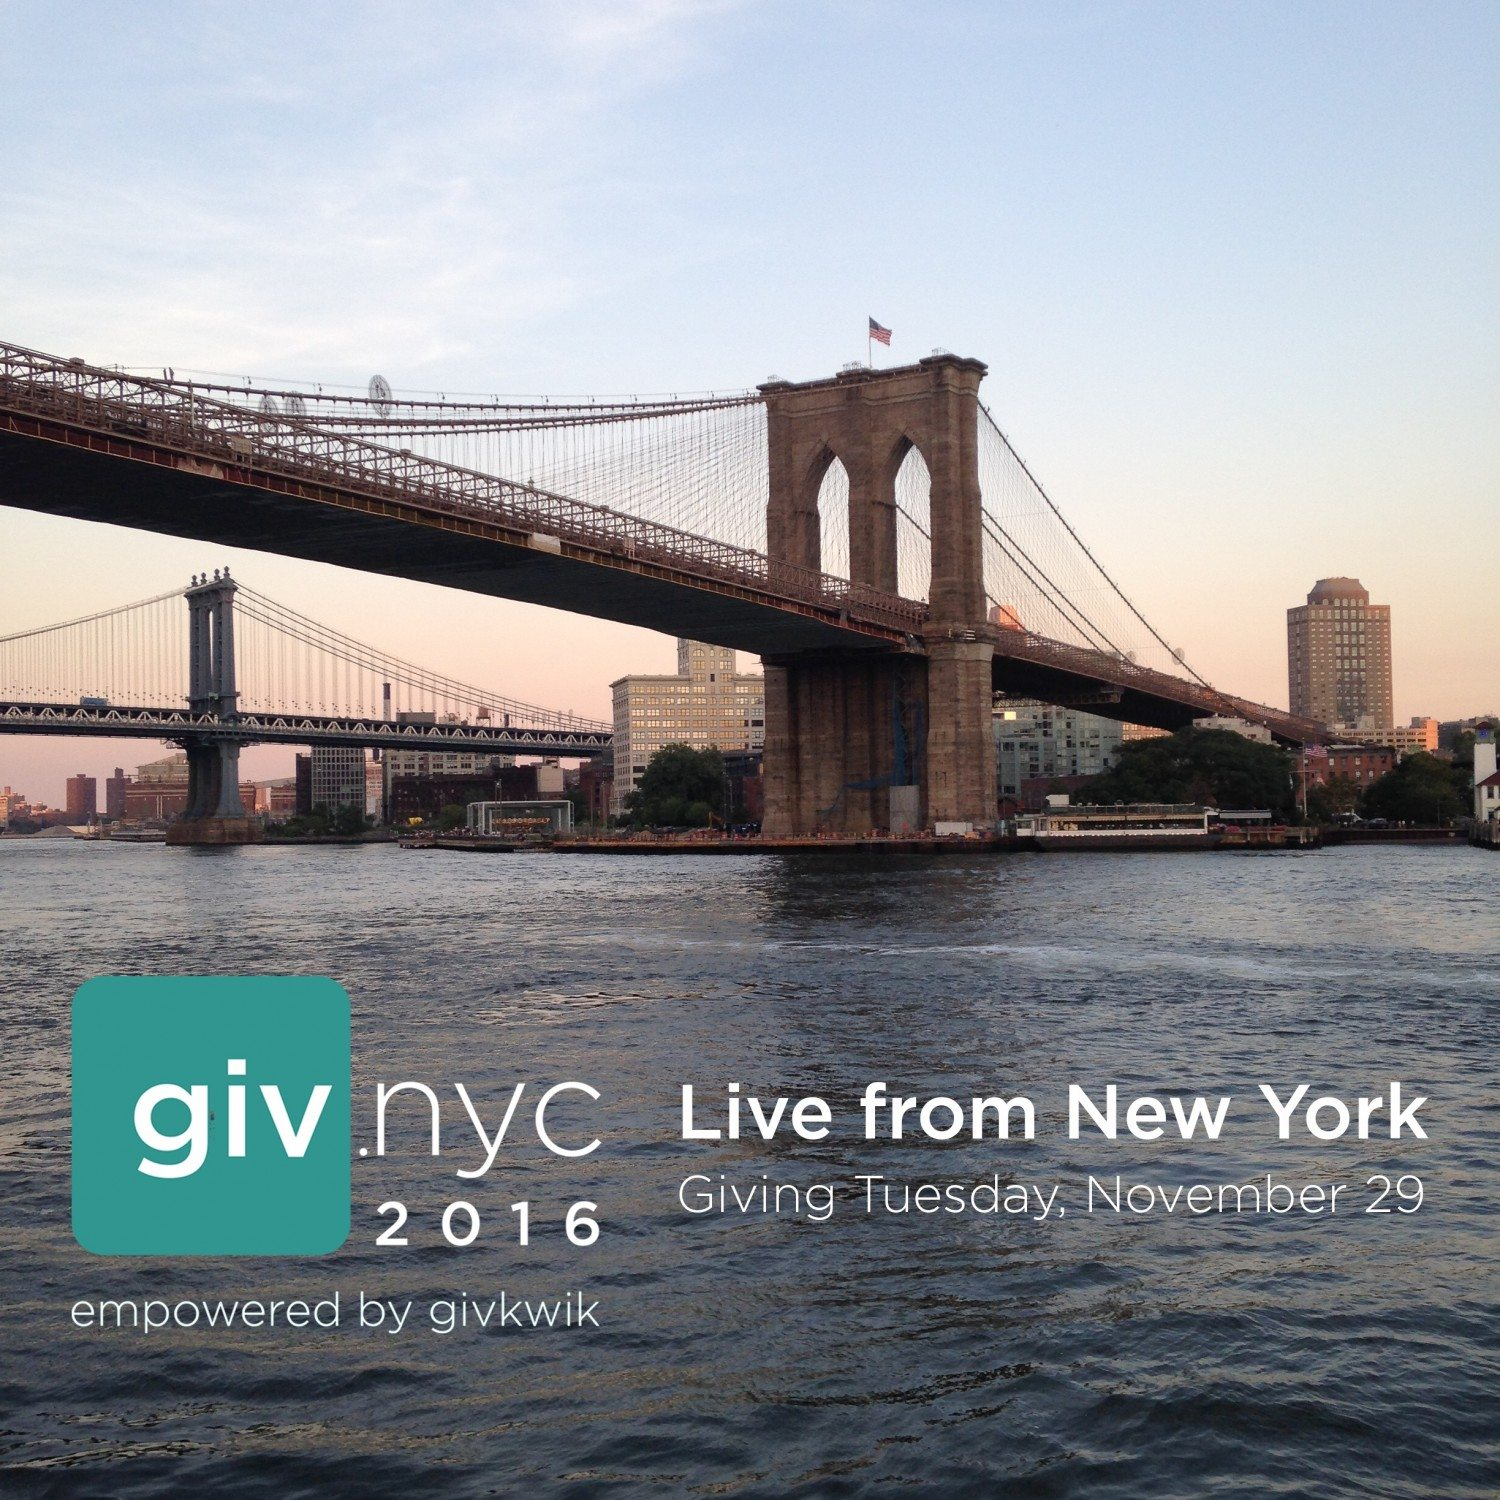 Givkwik to host its annual #GivingTuesday event, GIV.NYC 2016, on Nov. 29